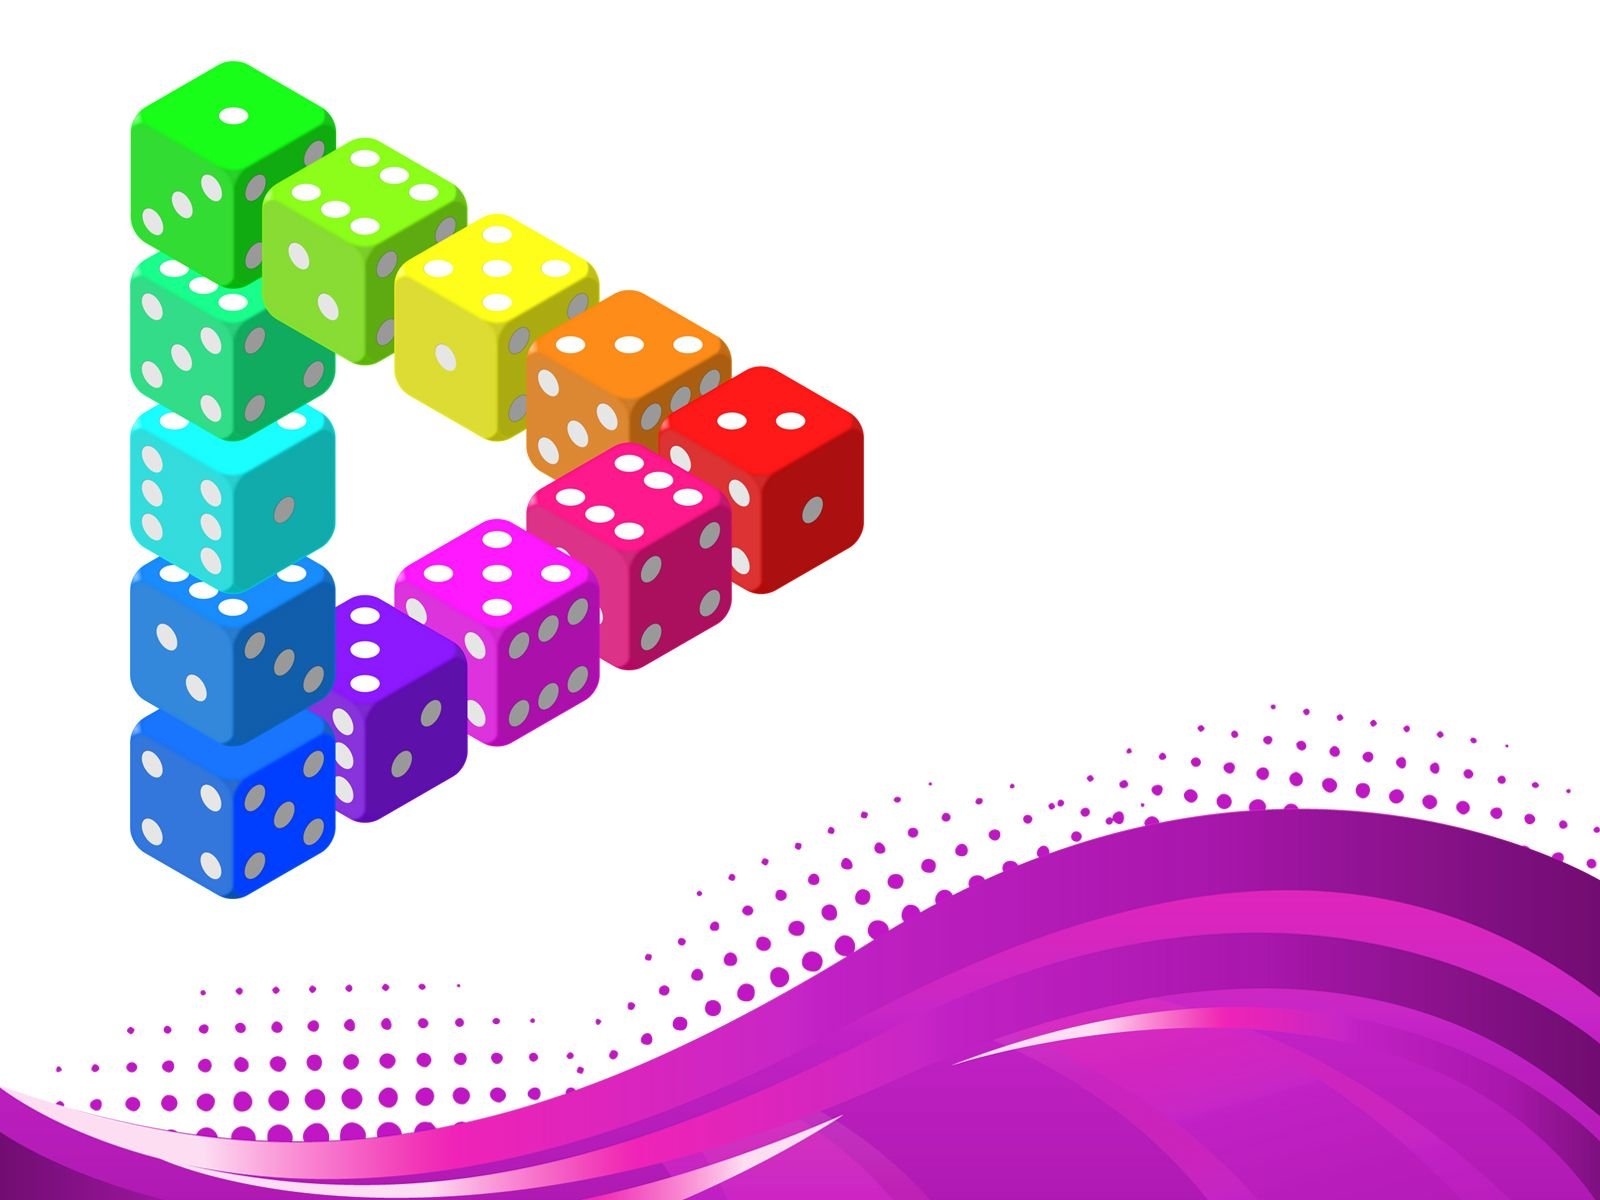 Download free 3d dice powerpoint templates containing dices with download free 3d dice powerpoint templates containing dices with multi color in the slide design and toneelgroepblik Choice Image